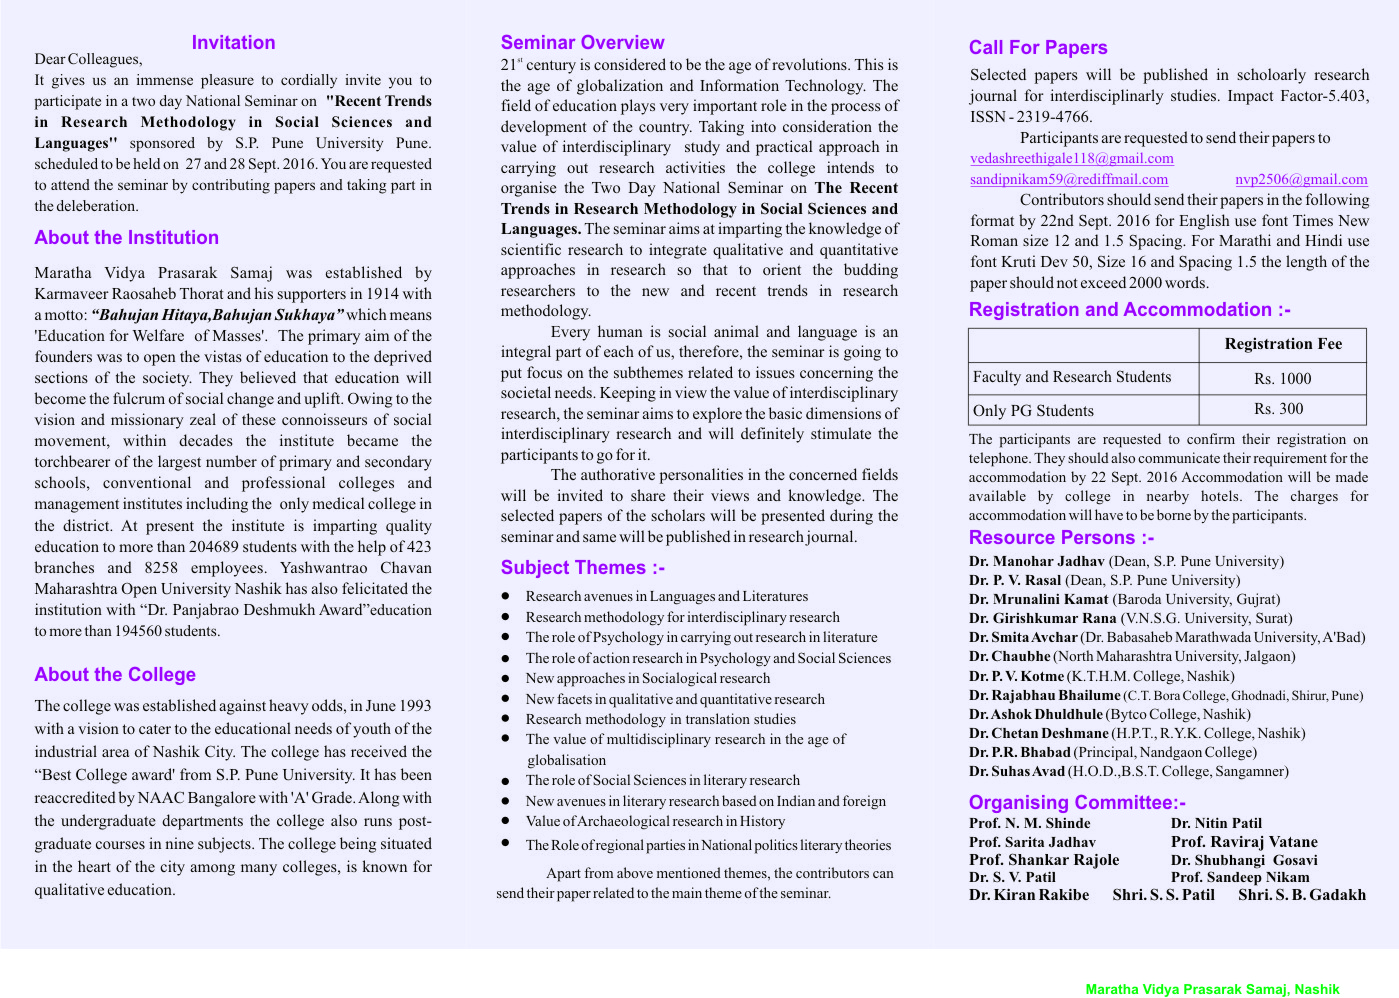 reflective essay on religion List of religion essay examples: free sample essays, research papers and term papers on/about essay on racism and religious discrimination in society (baldwin and rodriguez comparison) reflective closing of the catholic churches stories about these closings are often accompanied by.